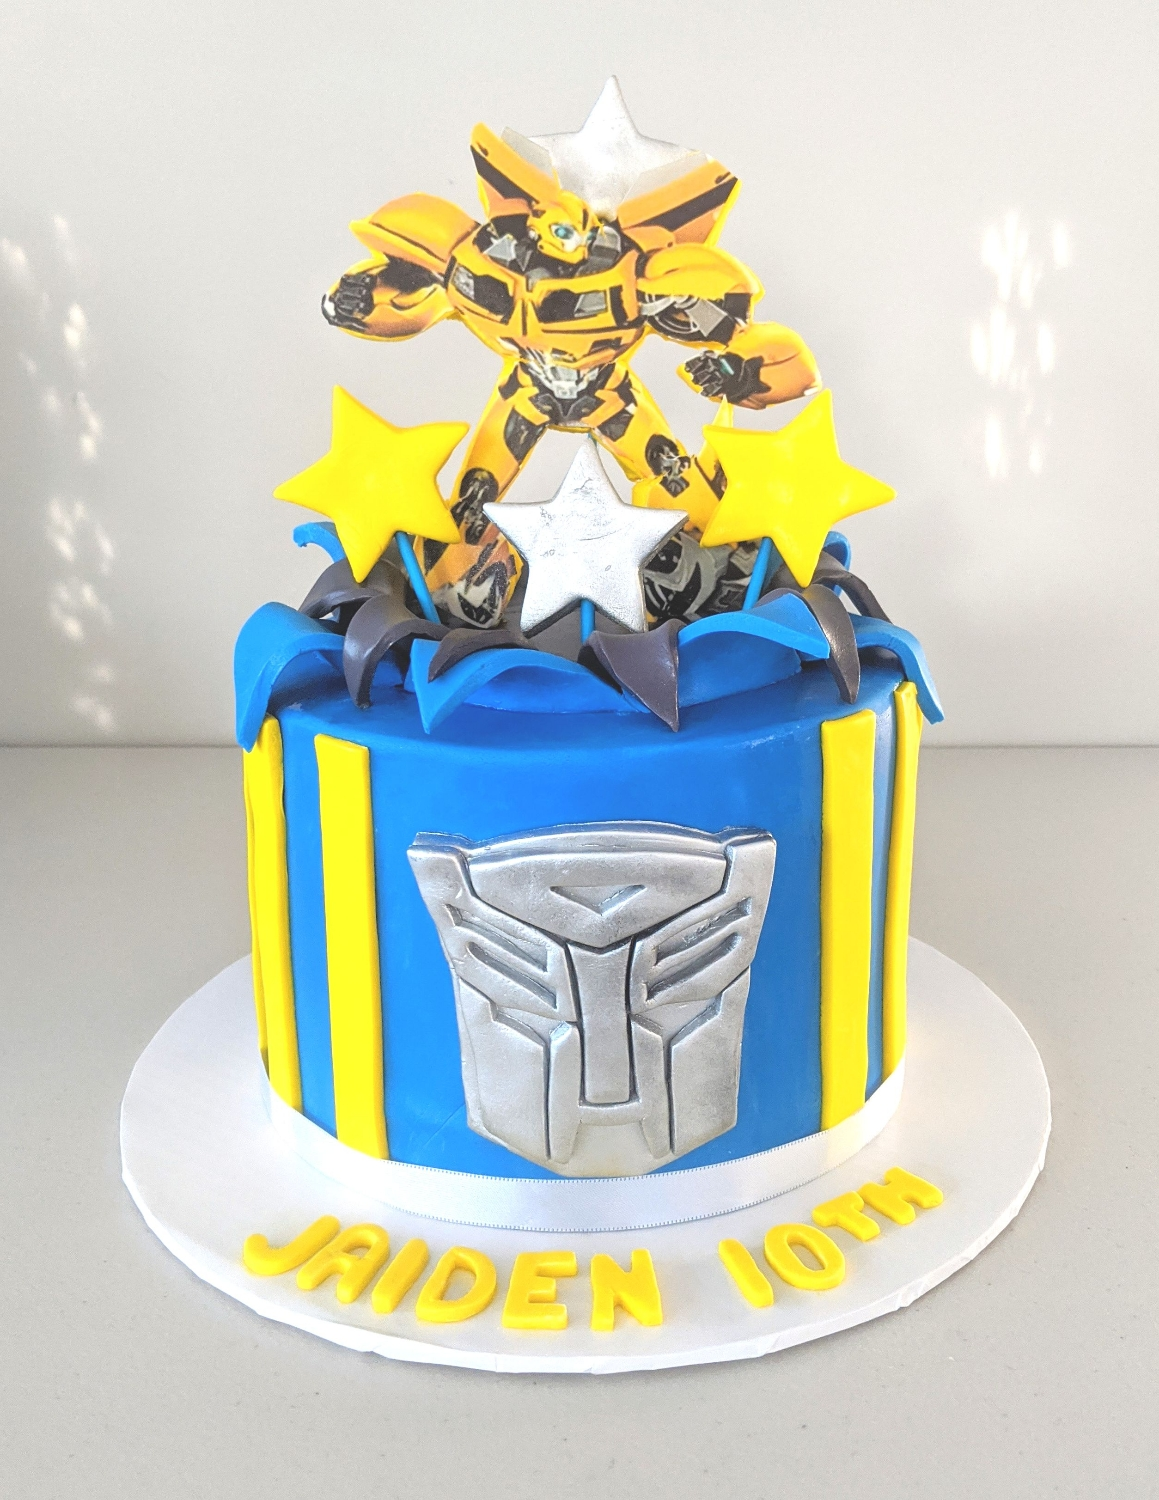 Bumble Bee Transformer Cake